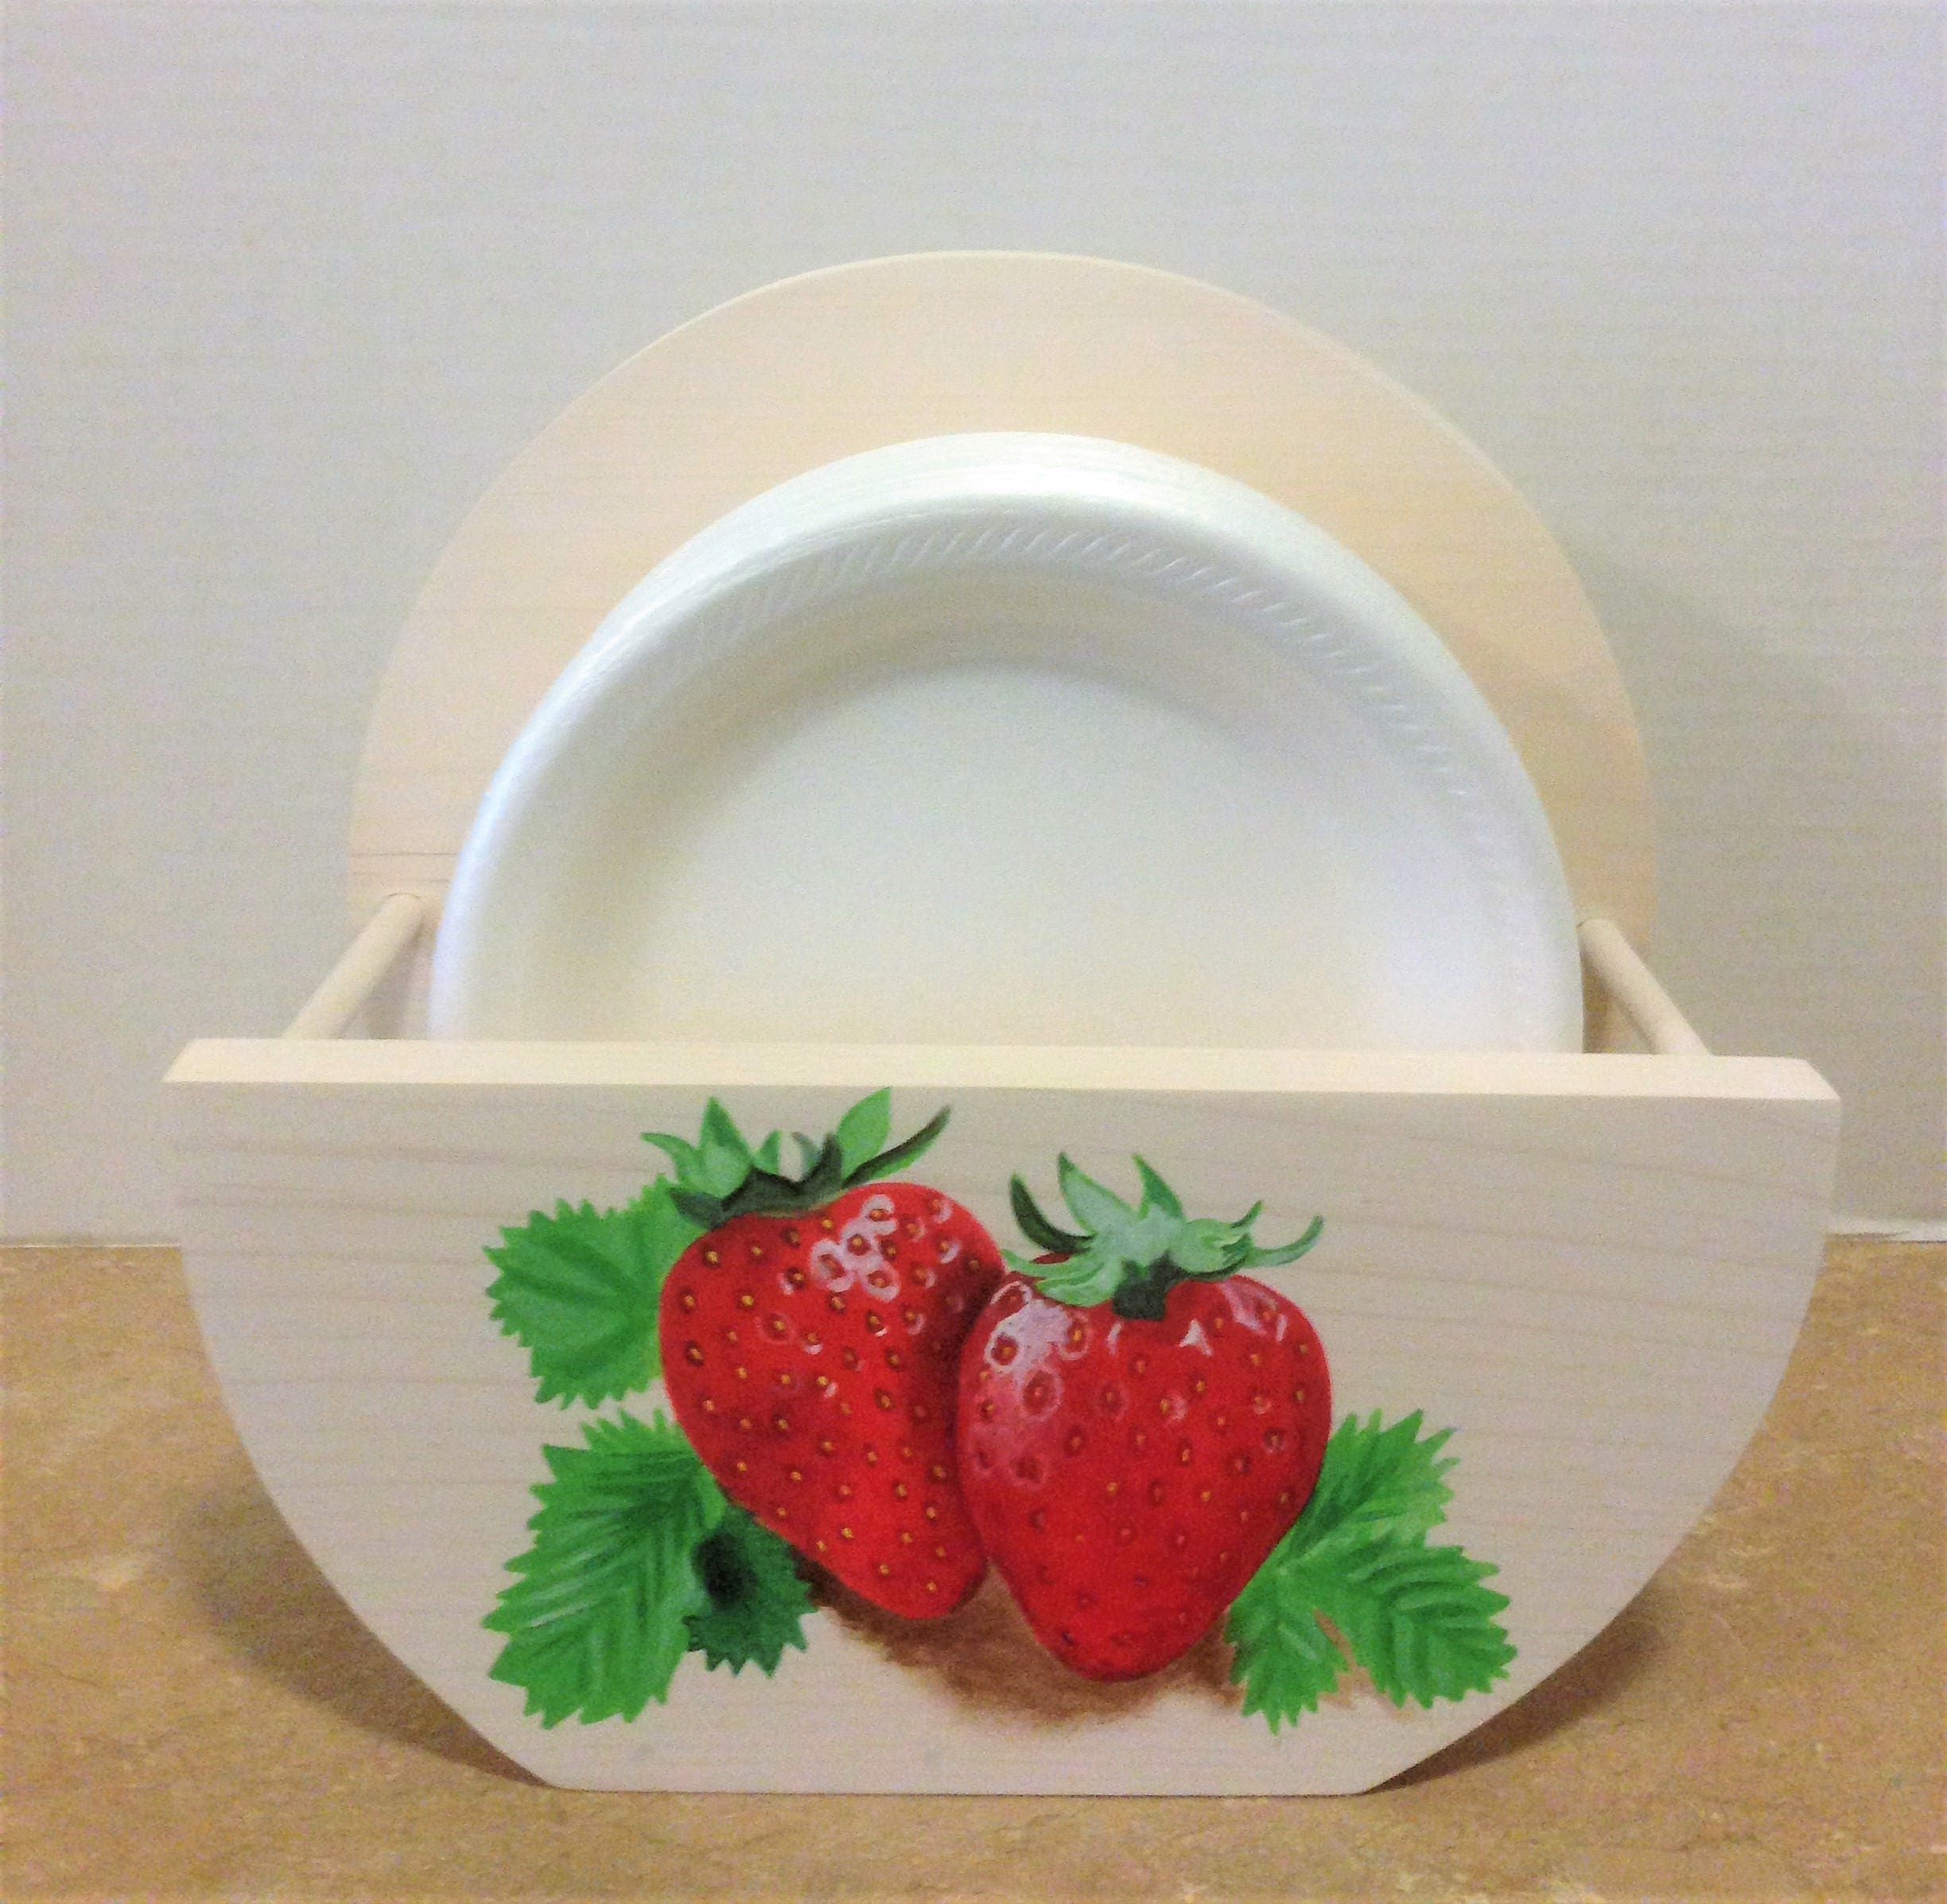 Paper plate holder strawberry decor strawberry kitchen holder for plates strawberries - Strawberry themed kitchen decor ...